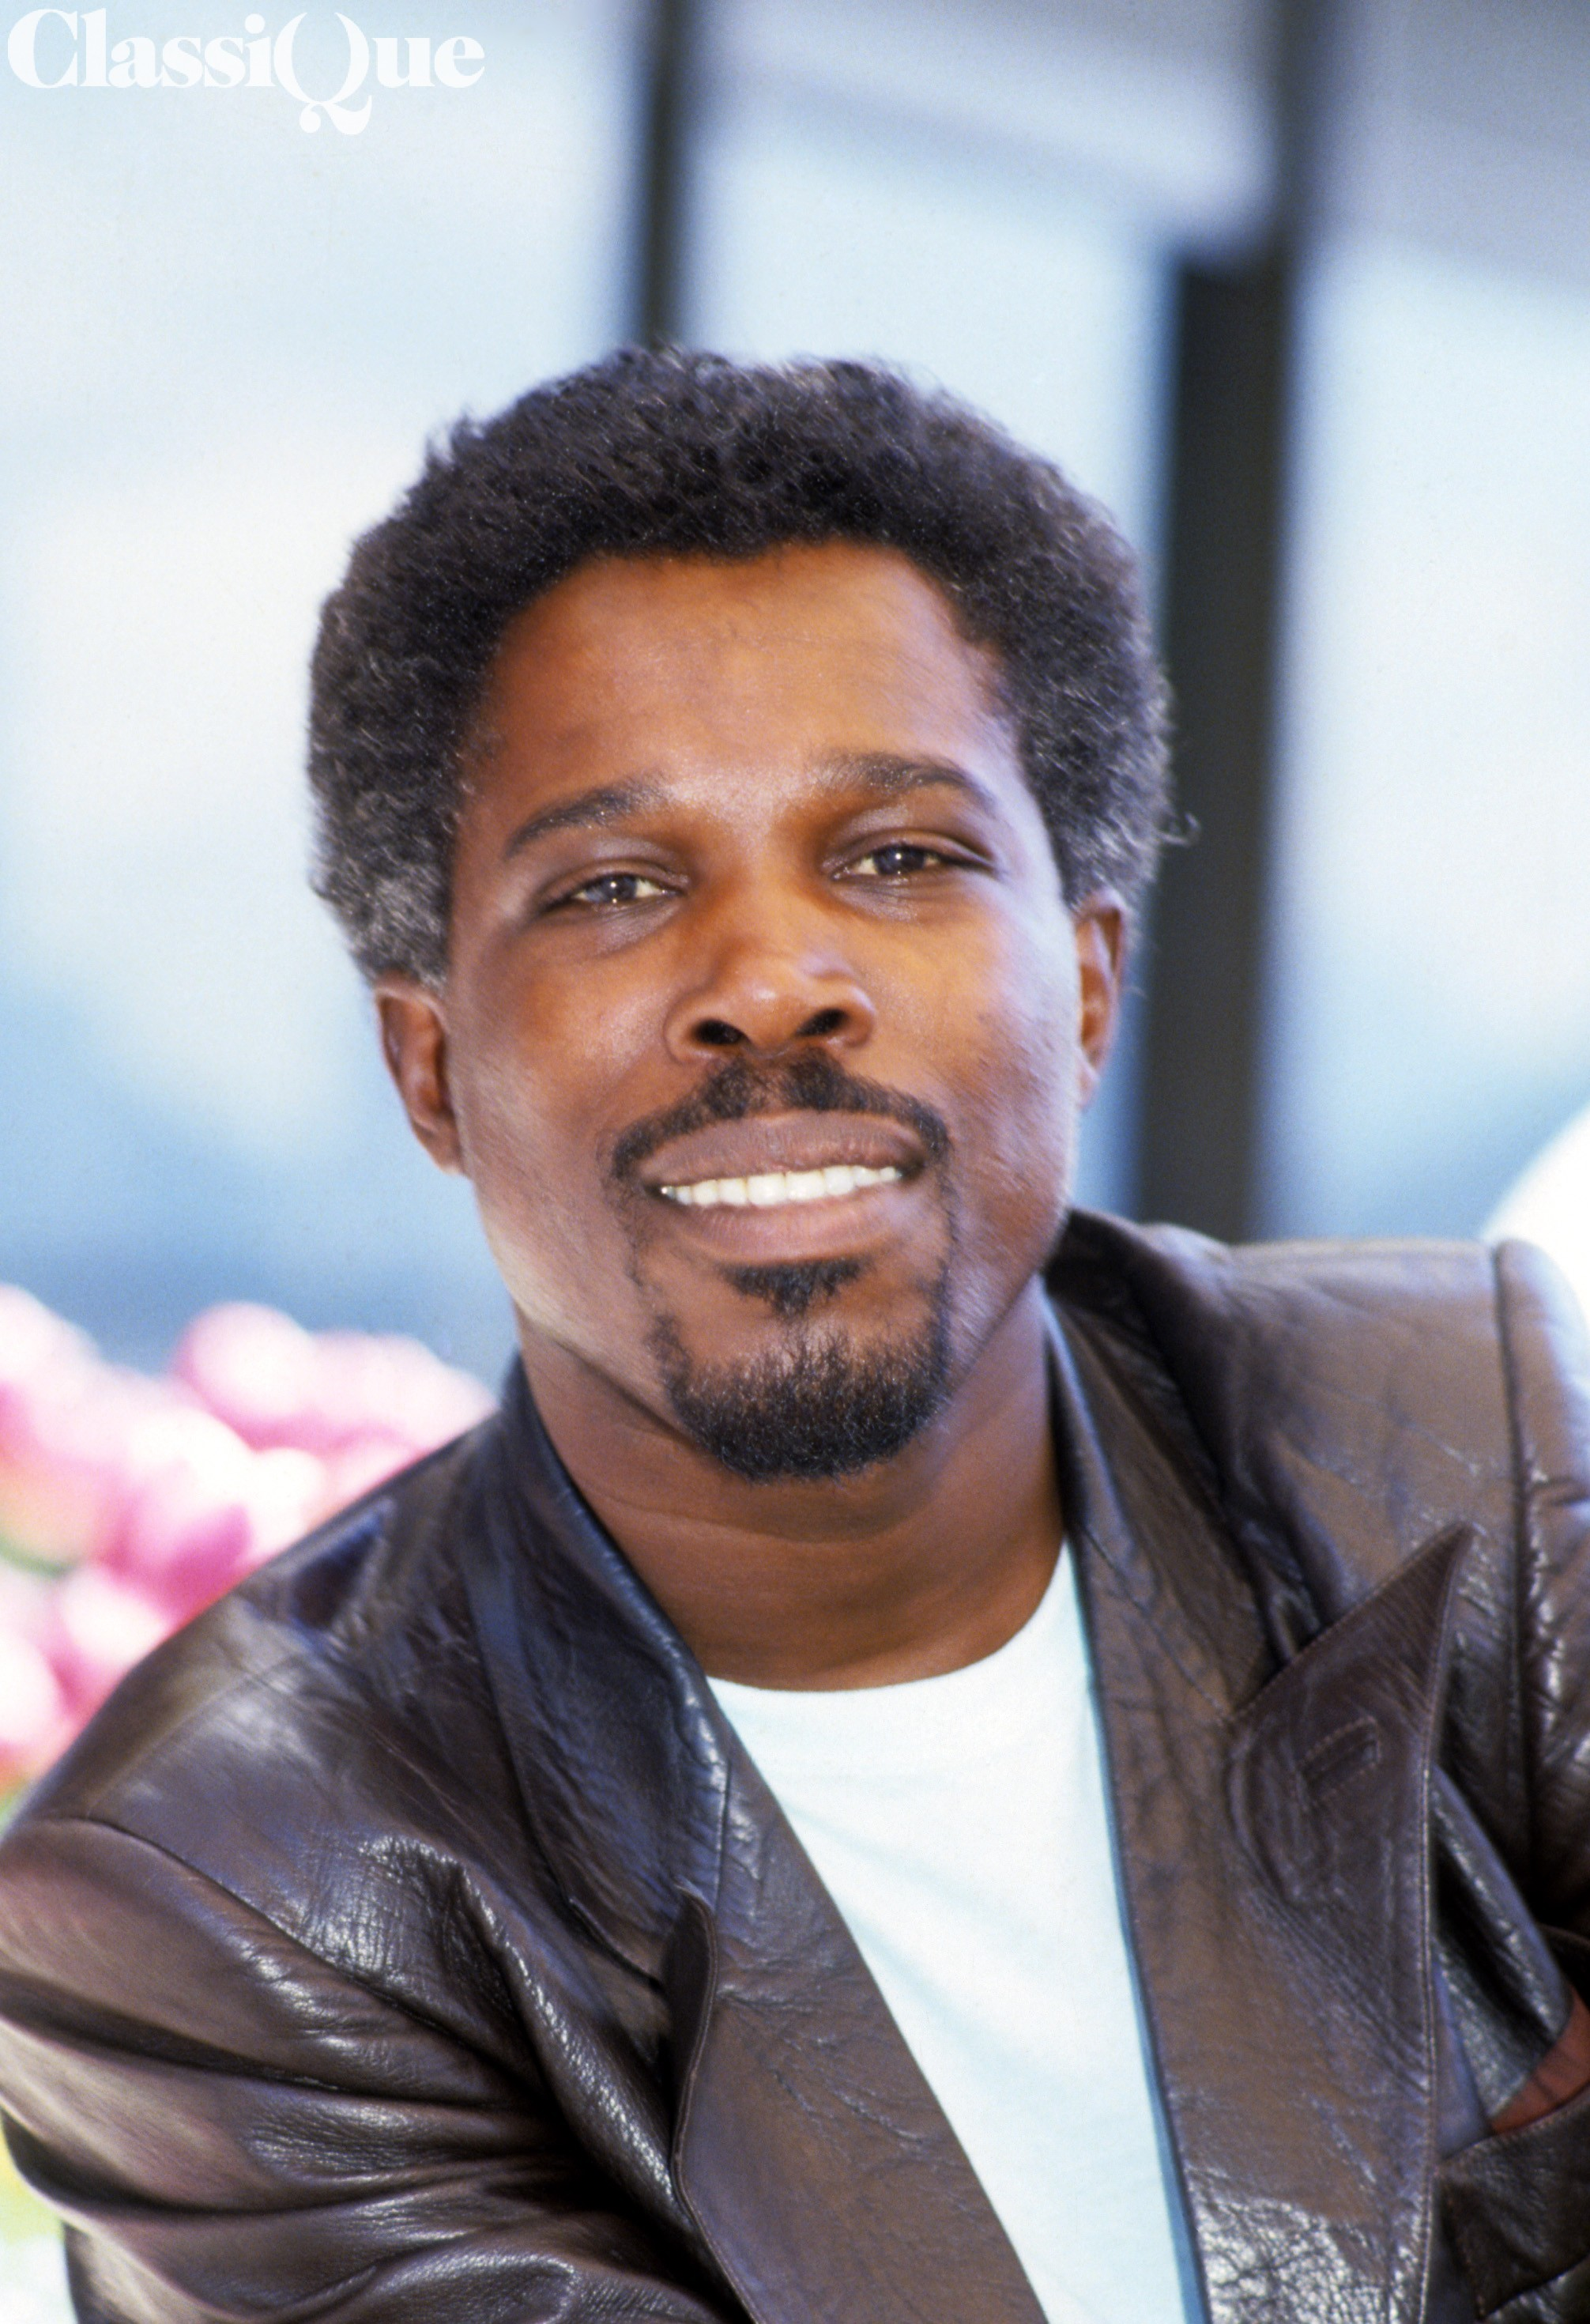 Billy Ocean Hire Amp Book For Parties Amp Events Classique